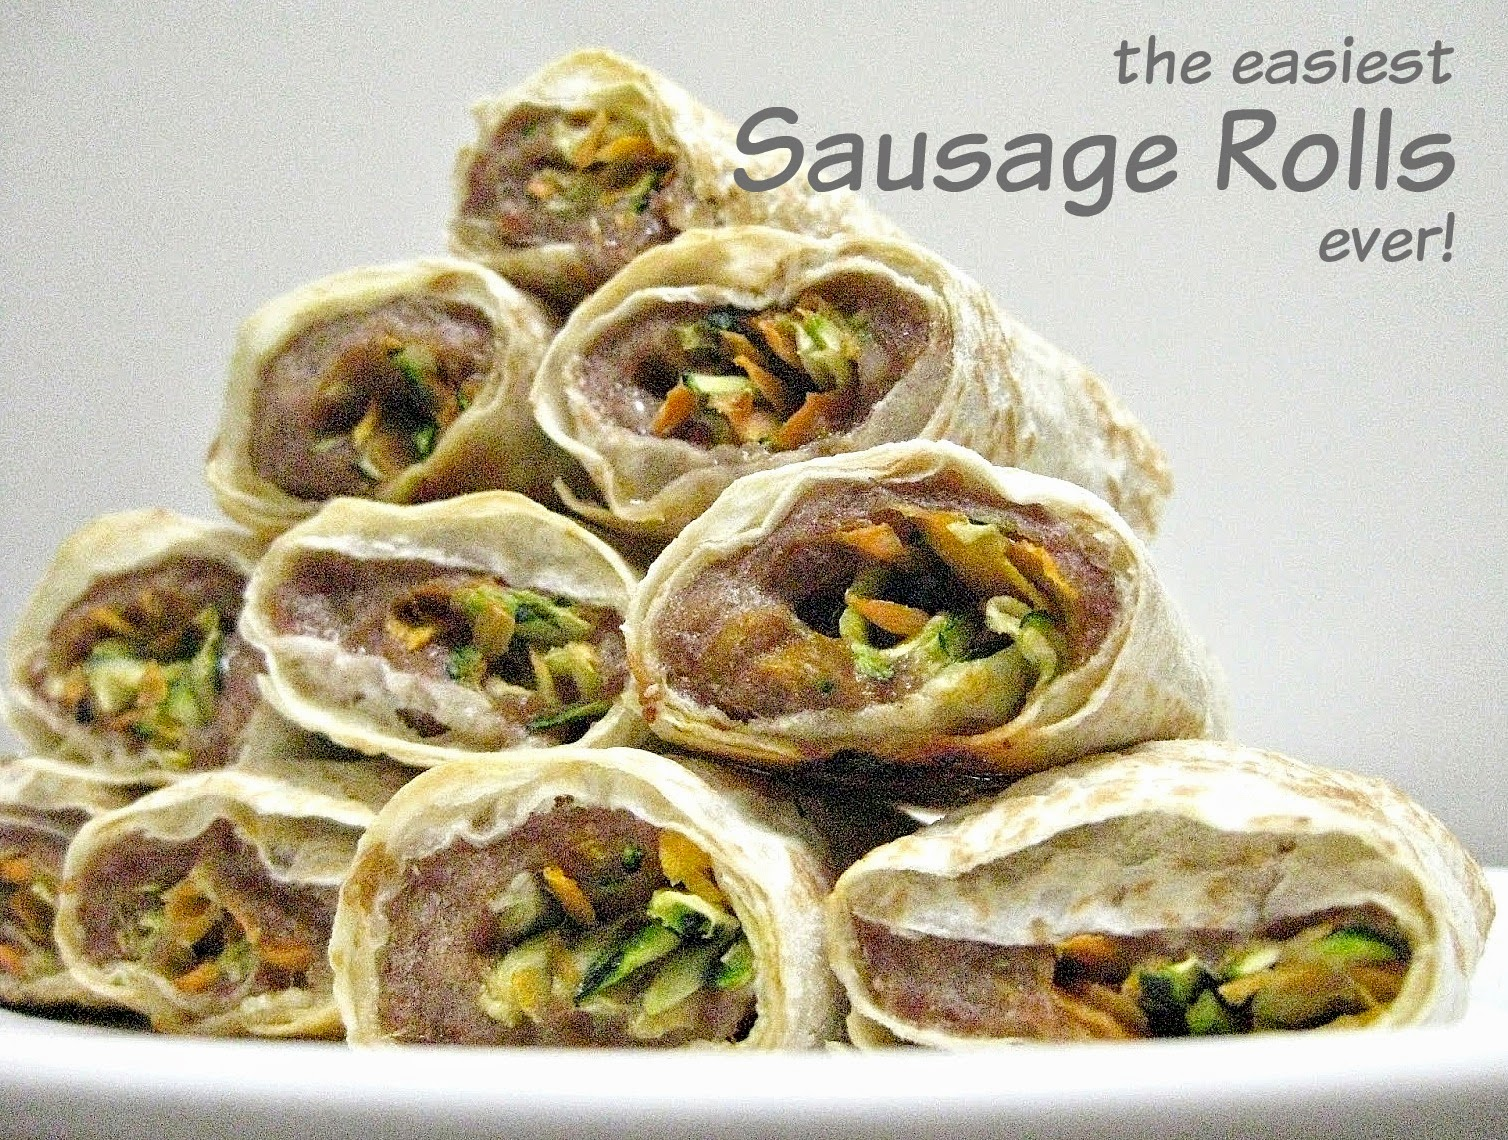 http://www.craftyrie.com/2014/11/recipe-easy-sausage-rolls-with-veg.html